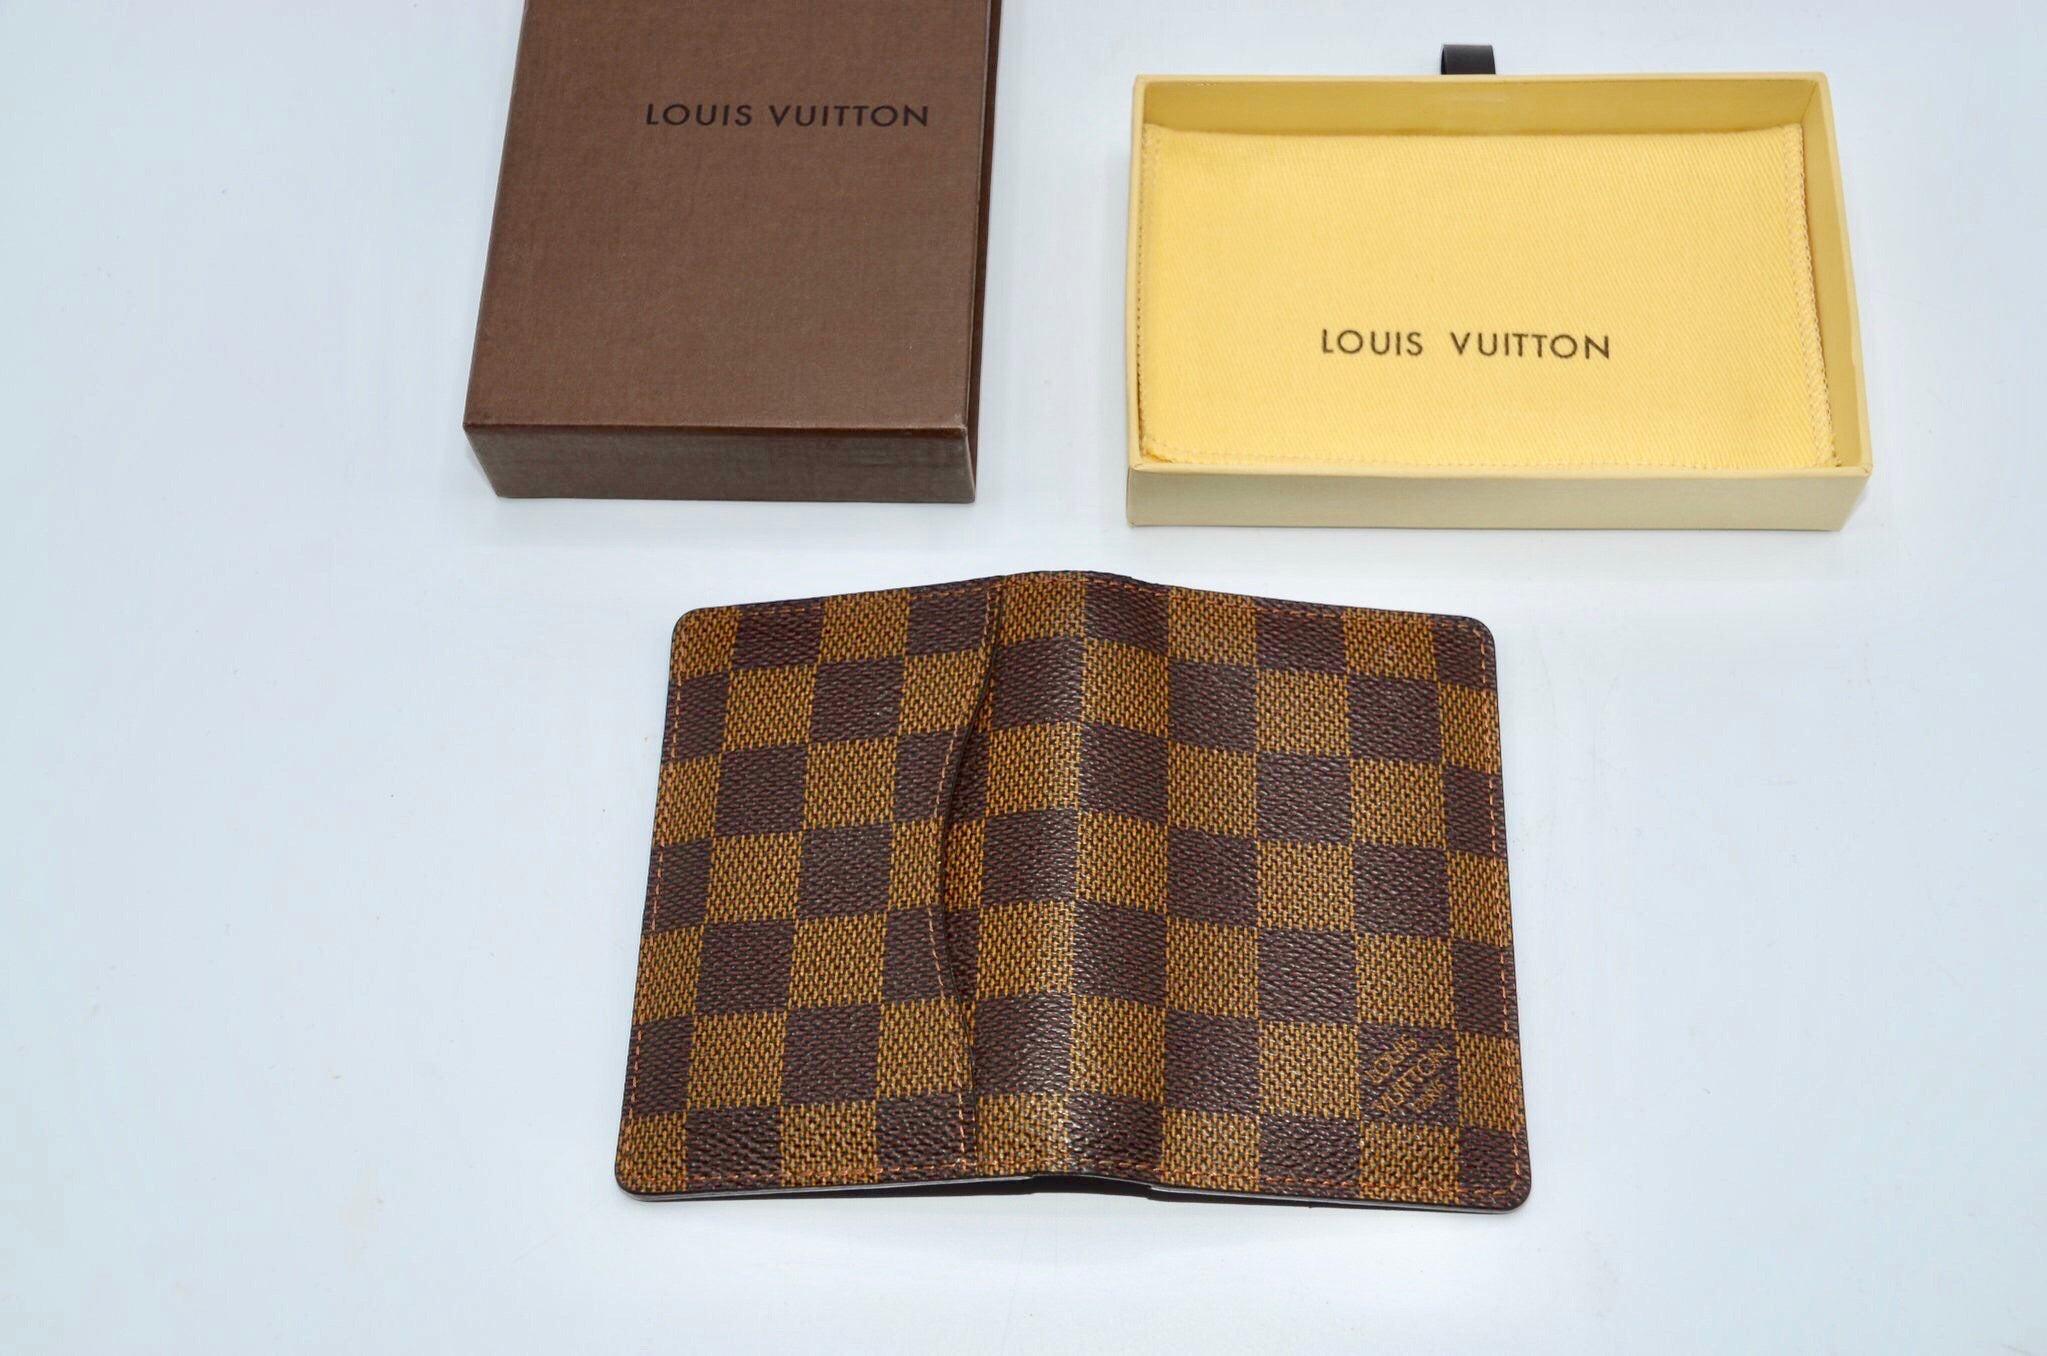 Louis vuitton Business Card holder - Iconics Preloved Luxury